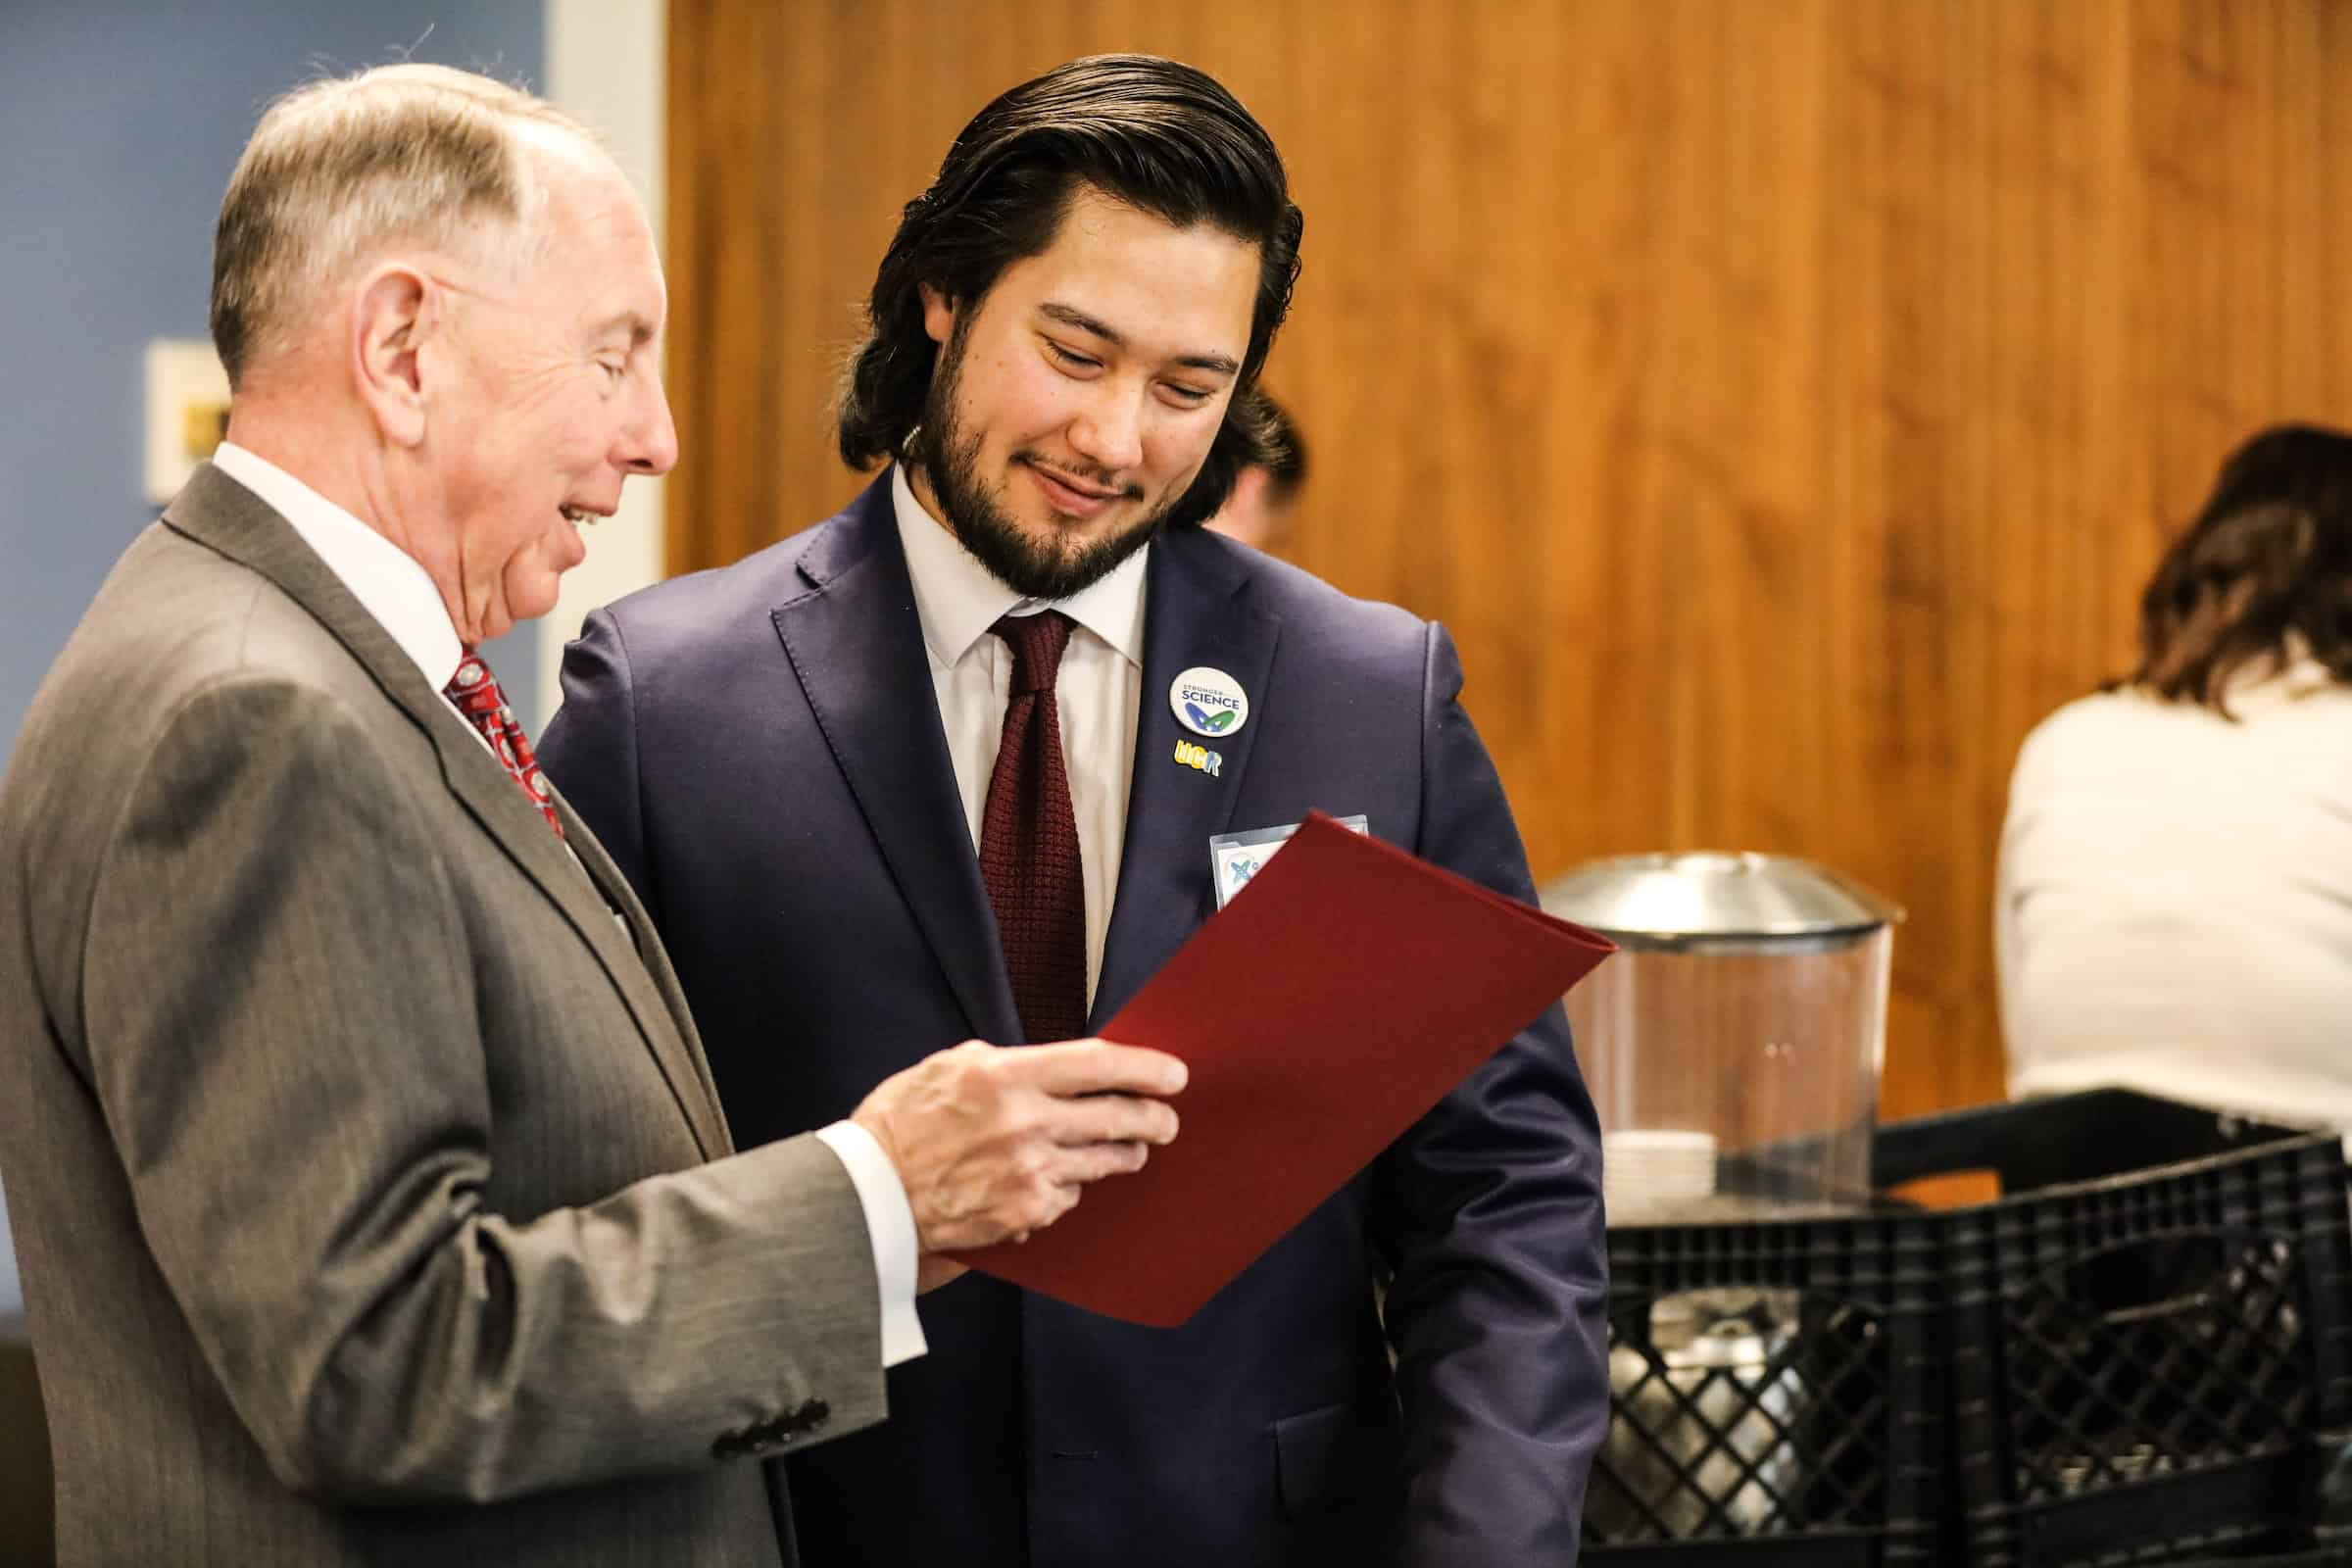 Senator Richard Roth presents William with a Senate Certificate of Recognition.